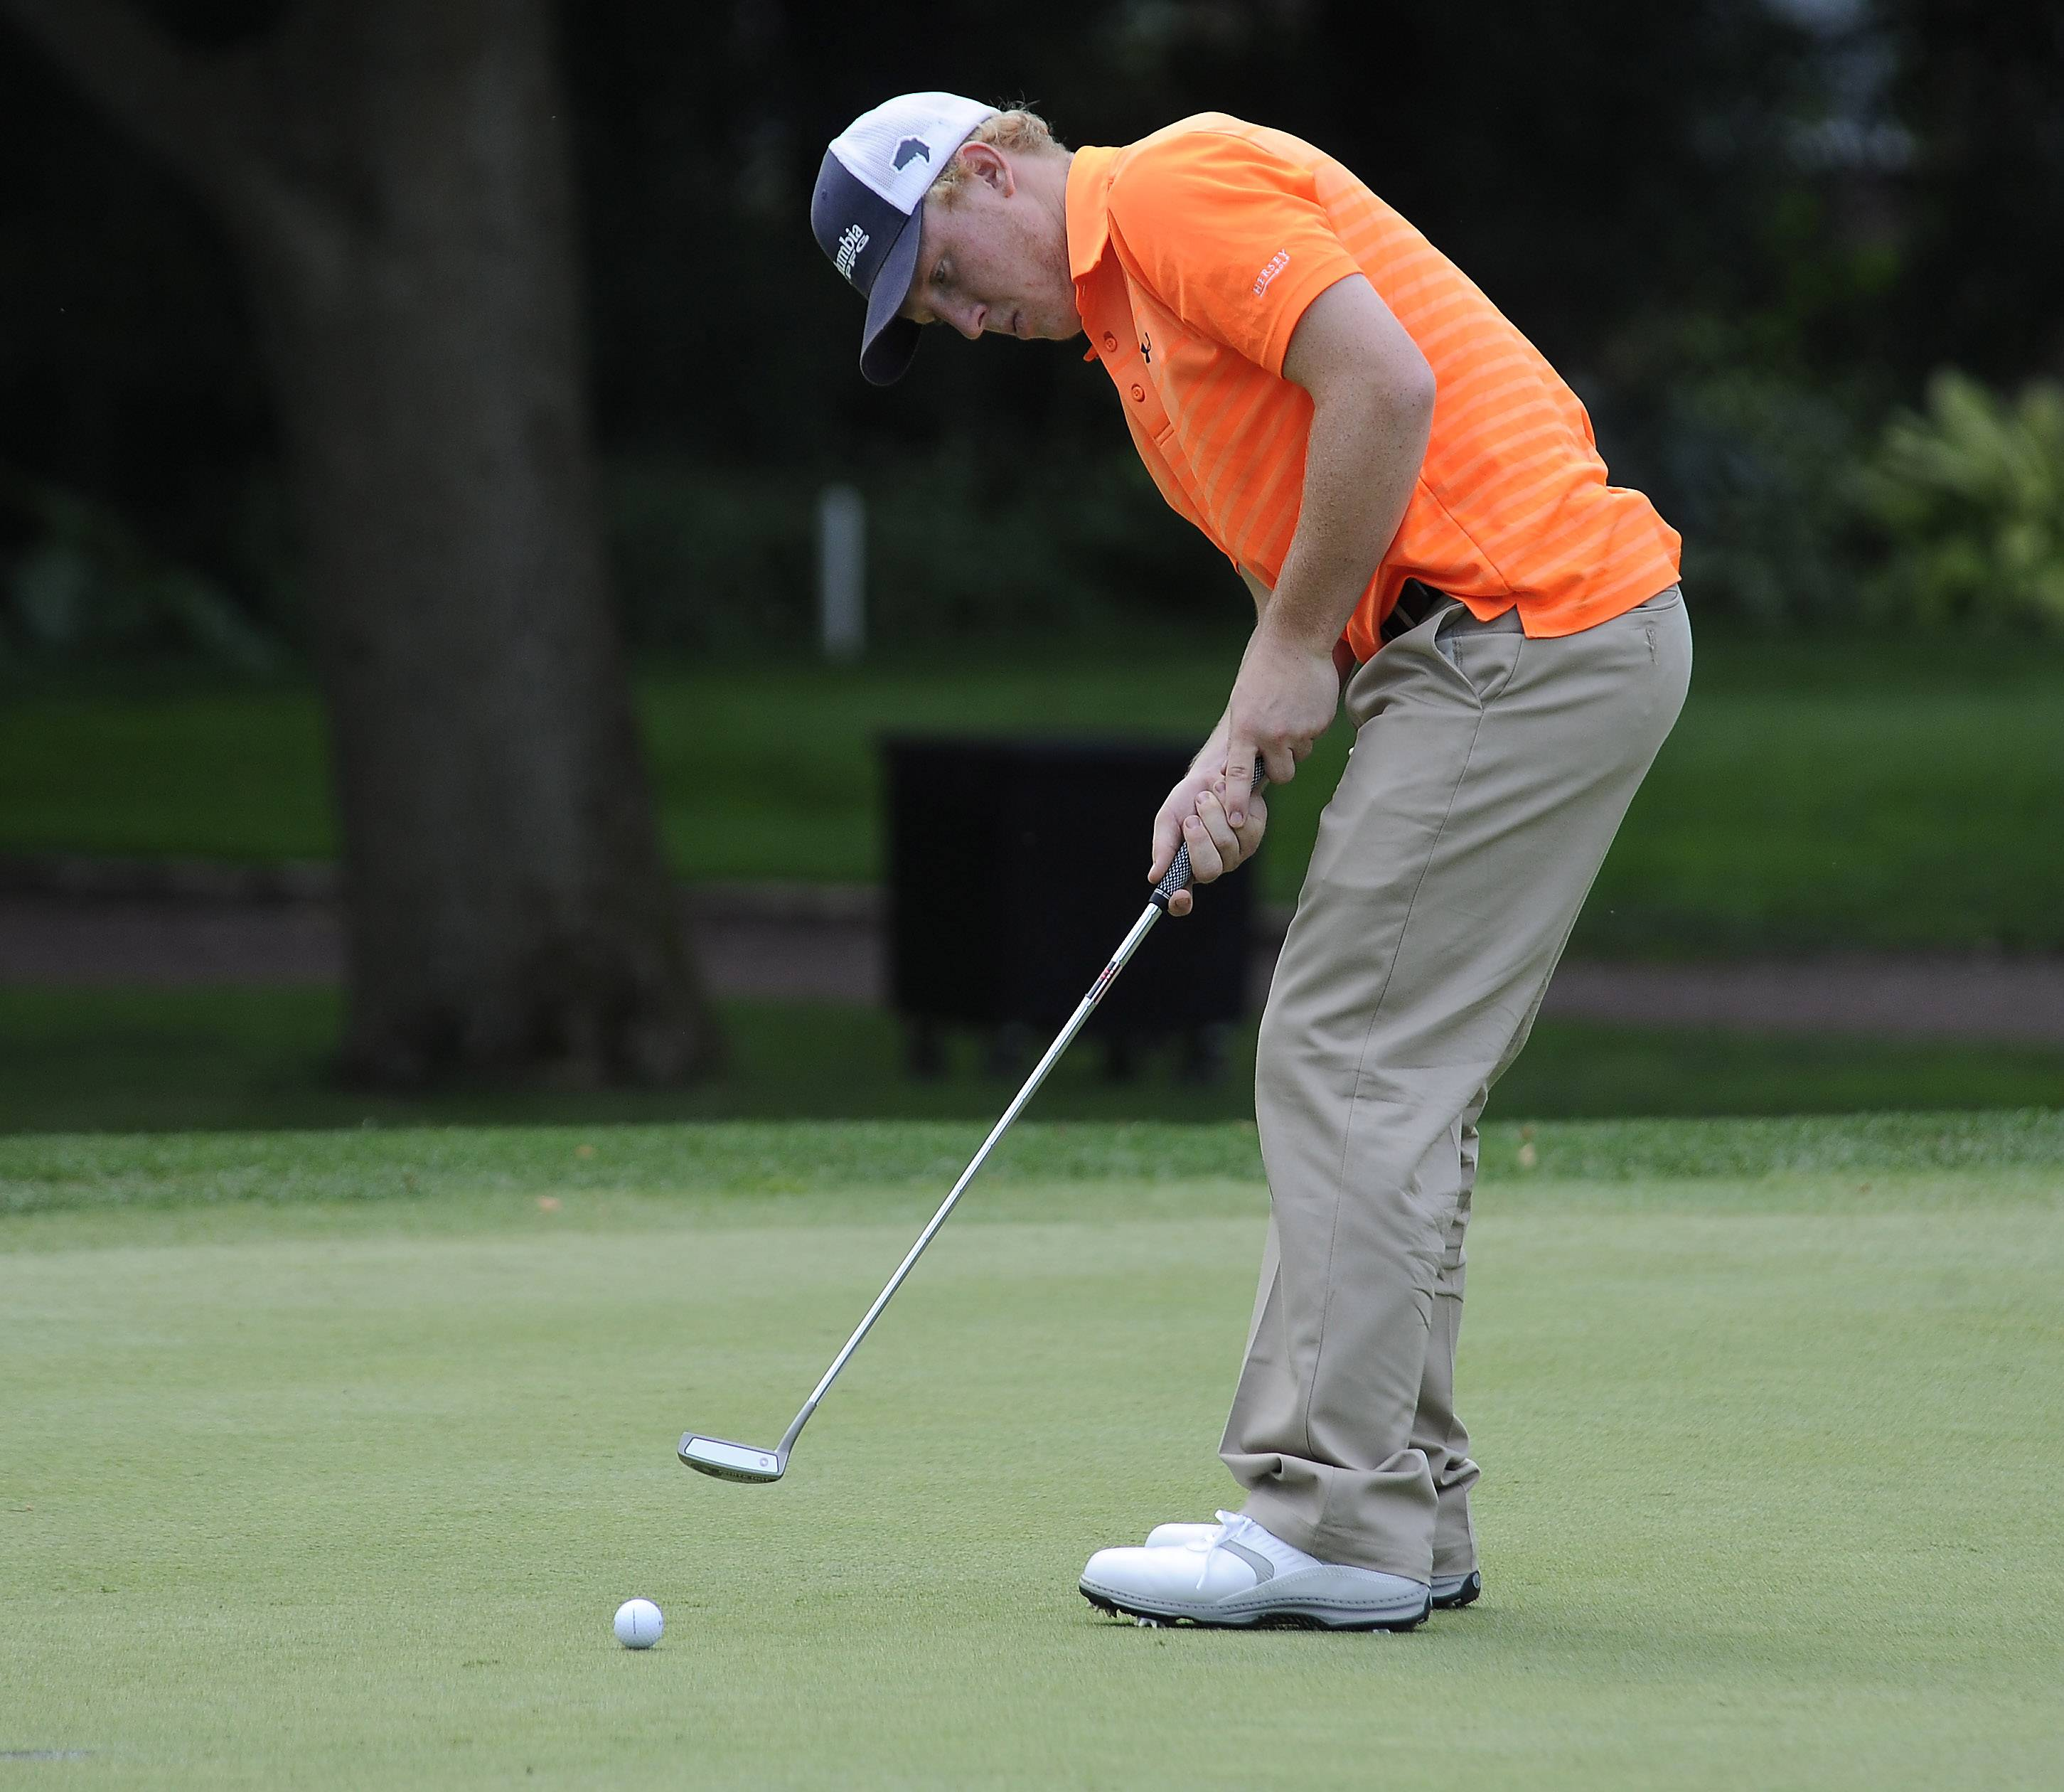 Hersey senior Dan Wolf putts on hole No. 5 five at the Hersey Invitational golf contest at Rolling Green Country club in Arlington Heights on Monday.